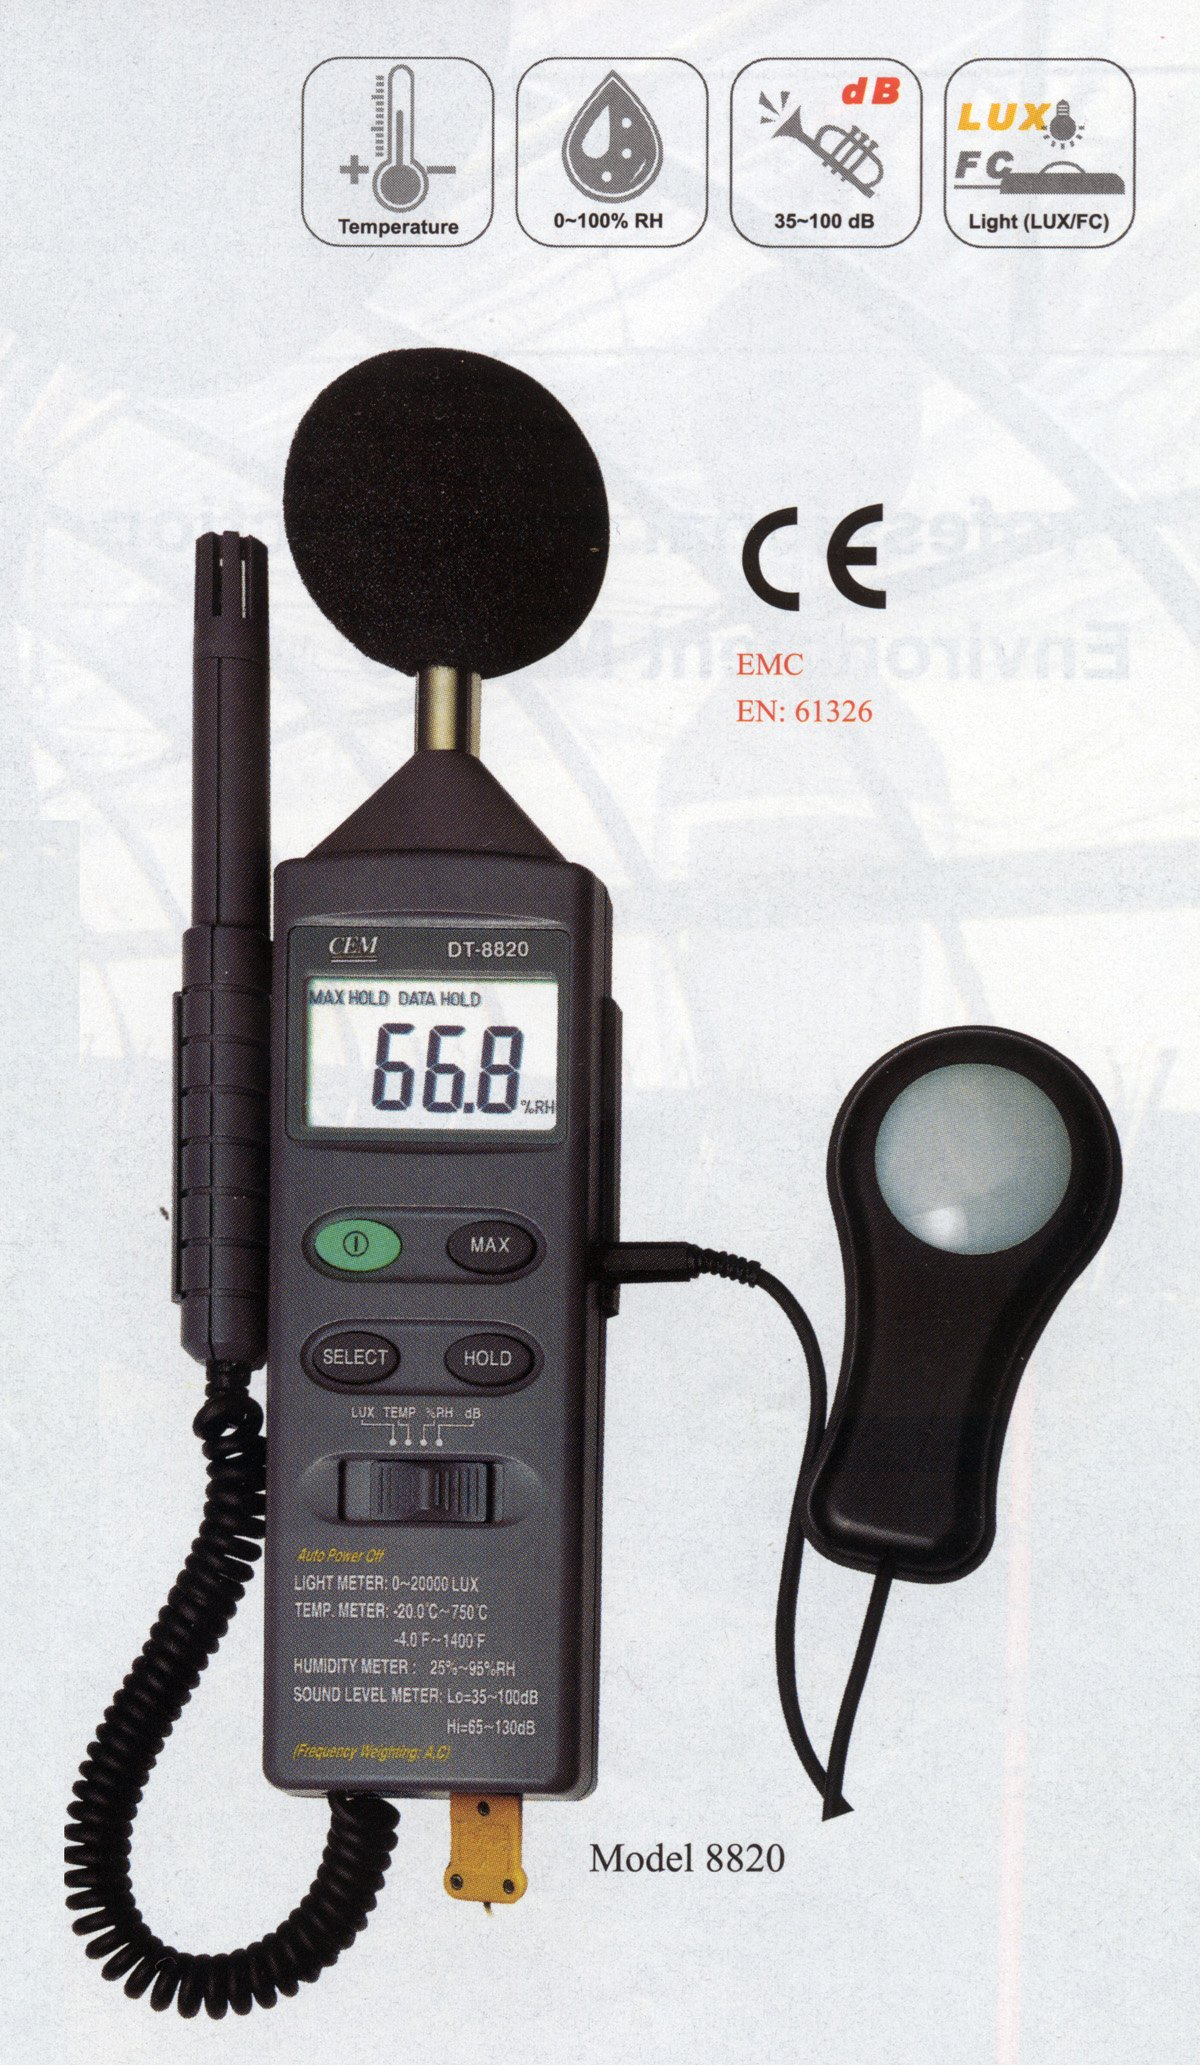 DT-8820 4-in-1 Industrial Thermometer Light Humidity Sound Meter NEW by CEM